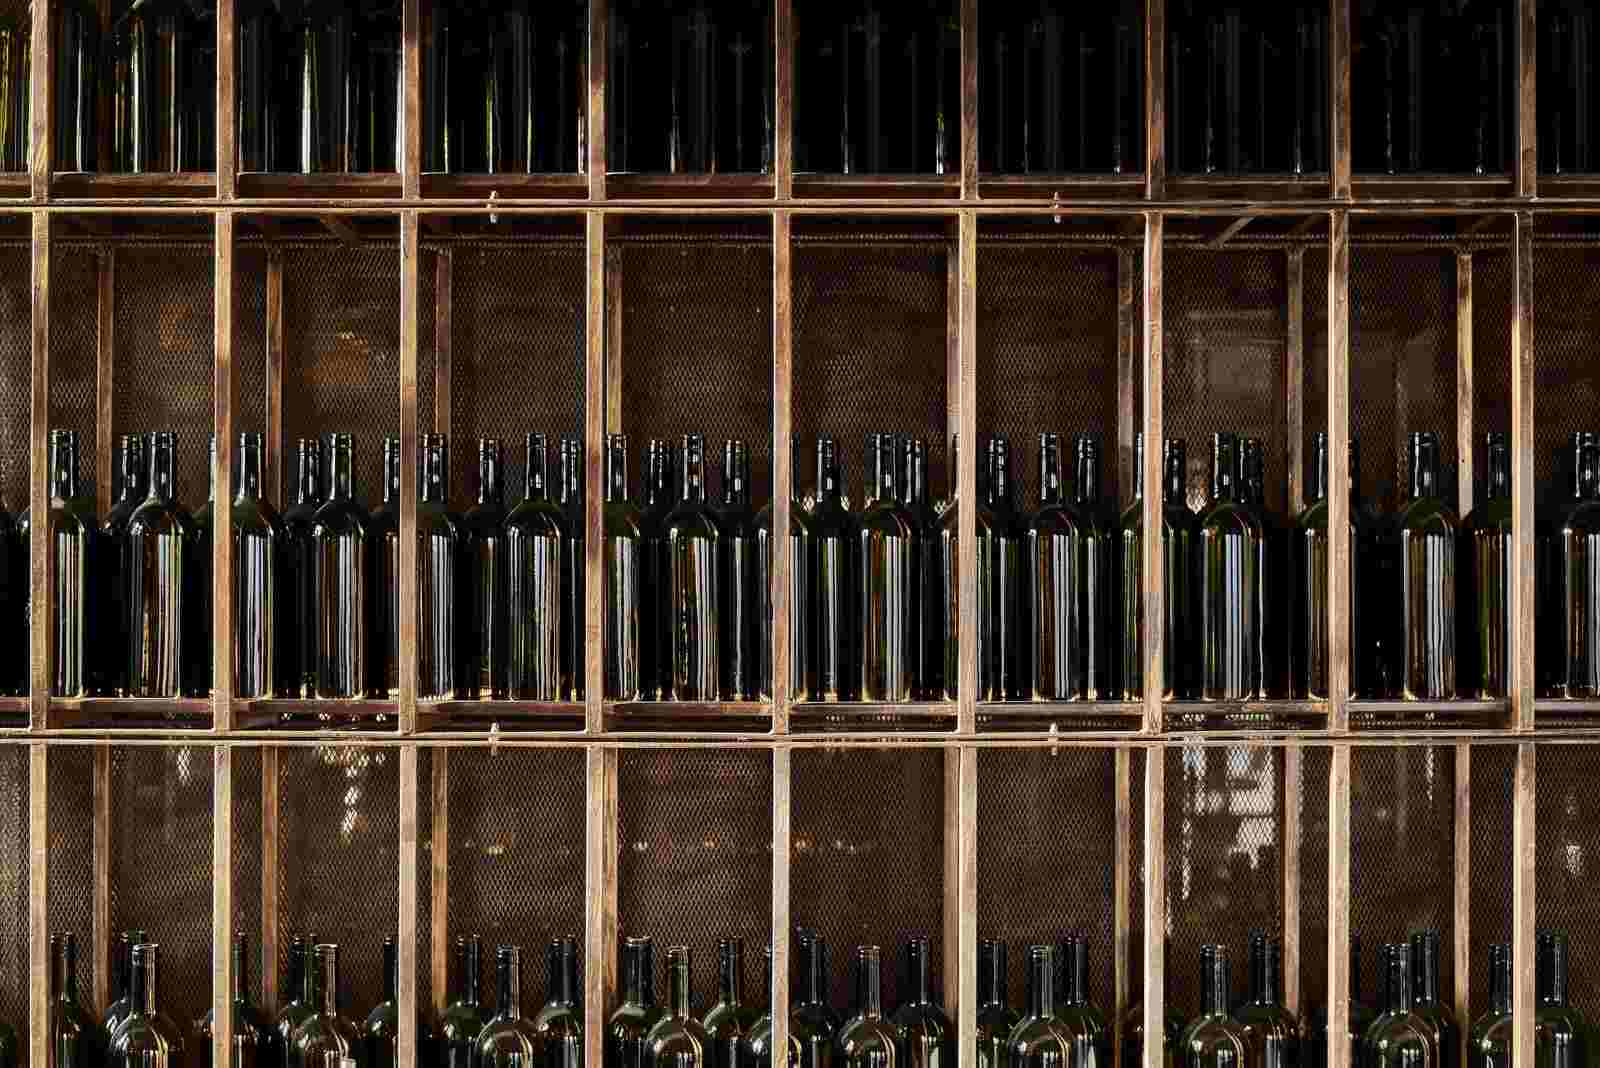 Portuguese wines at Digby restaurant